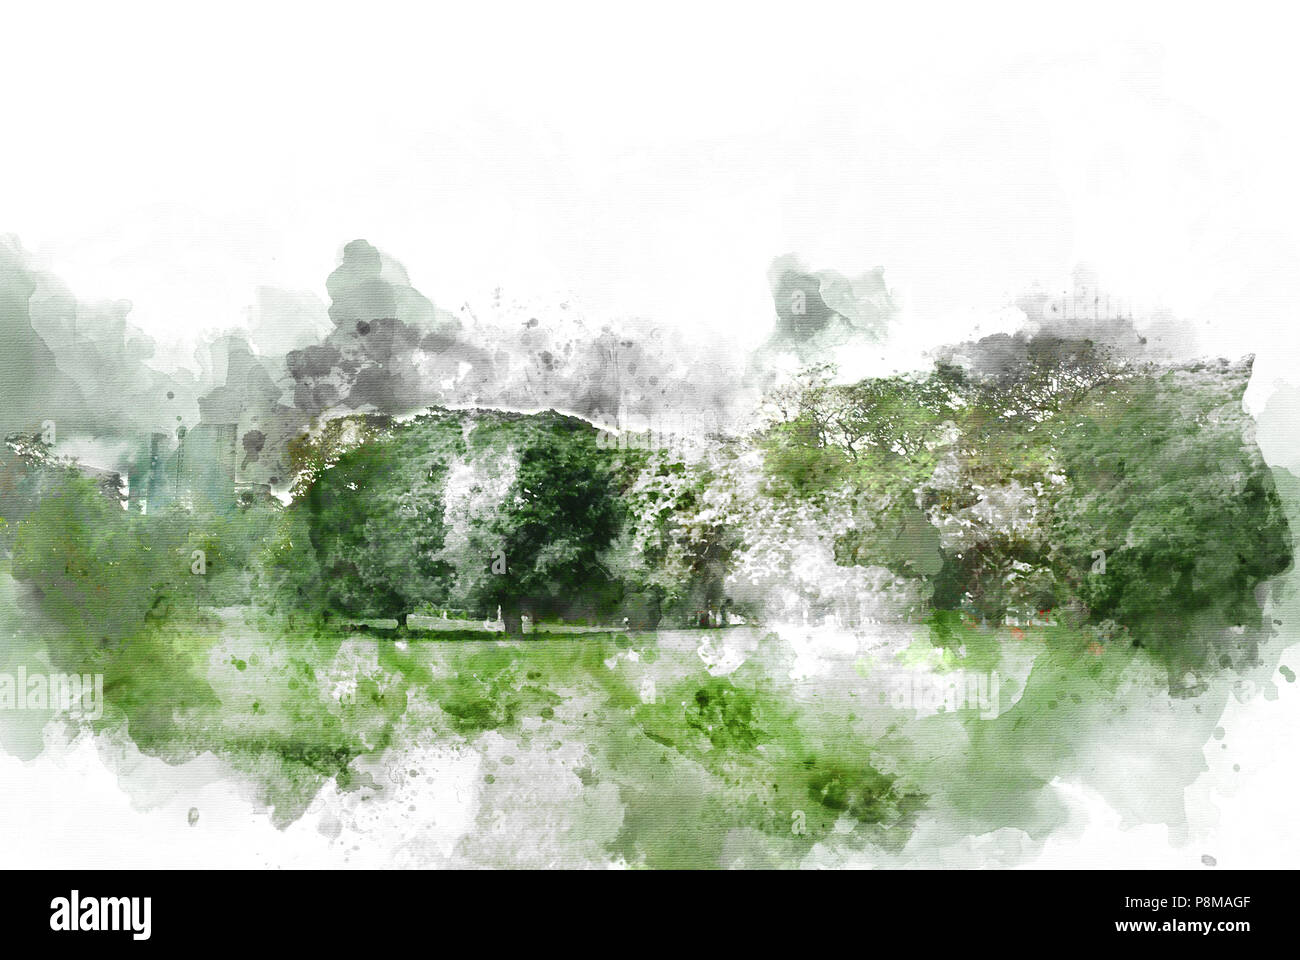 Abstract tree and field landscape on watercolor illustration painting background. - Stock Image